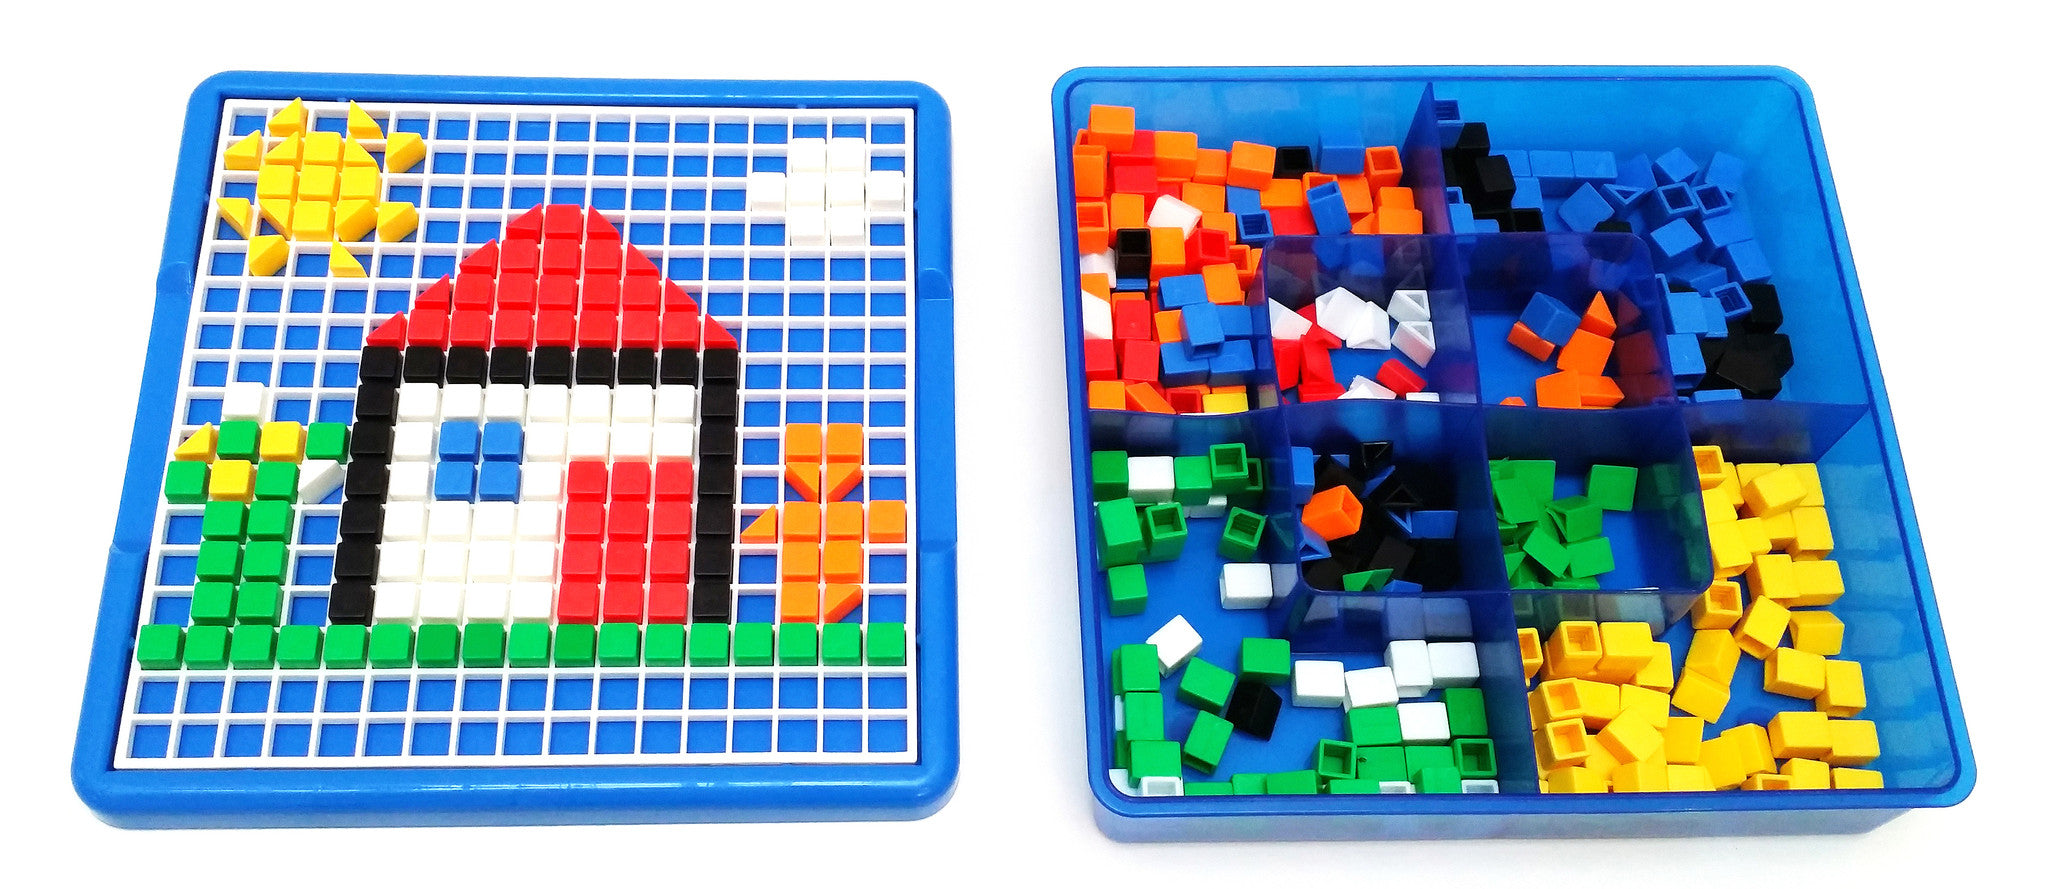 VIAHART Creative Mosaic Pegboard Jigsaw Puzzle Block Building Game for Kids Kindergarten Educational Toys